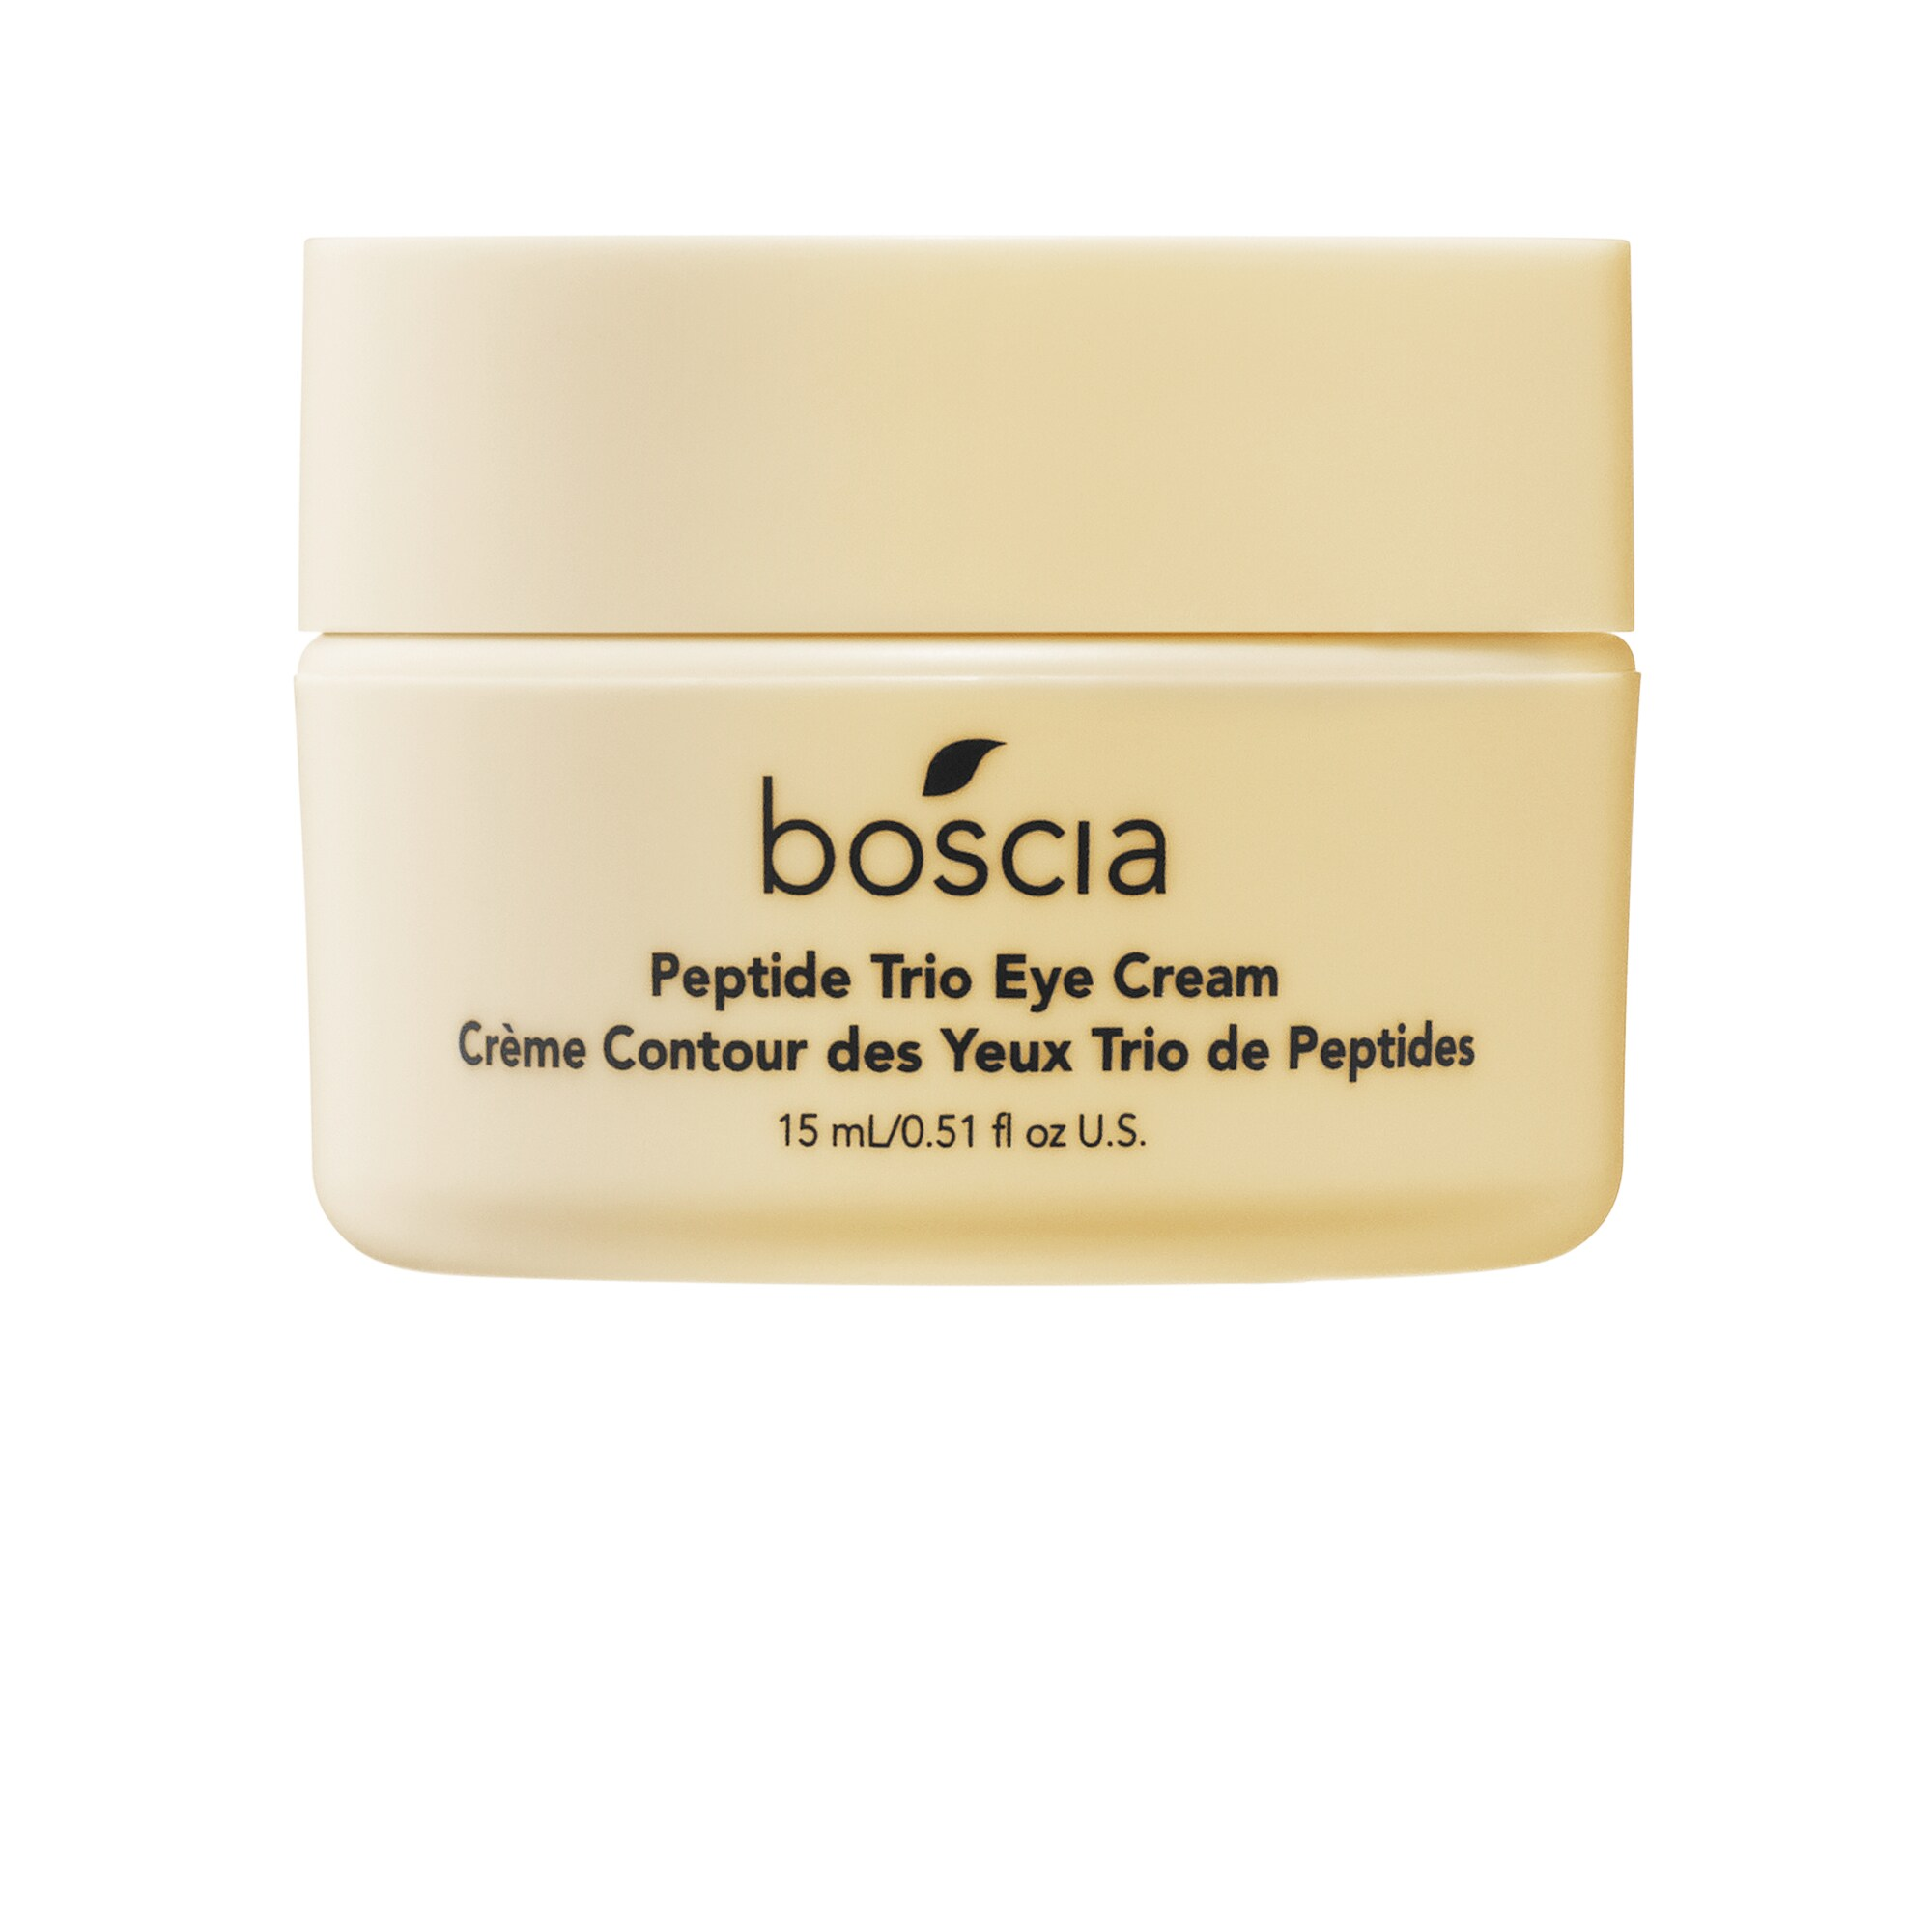 Boscia - Peptide Trio Eye Cream